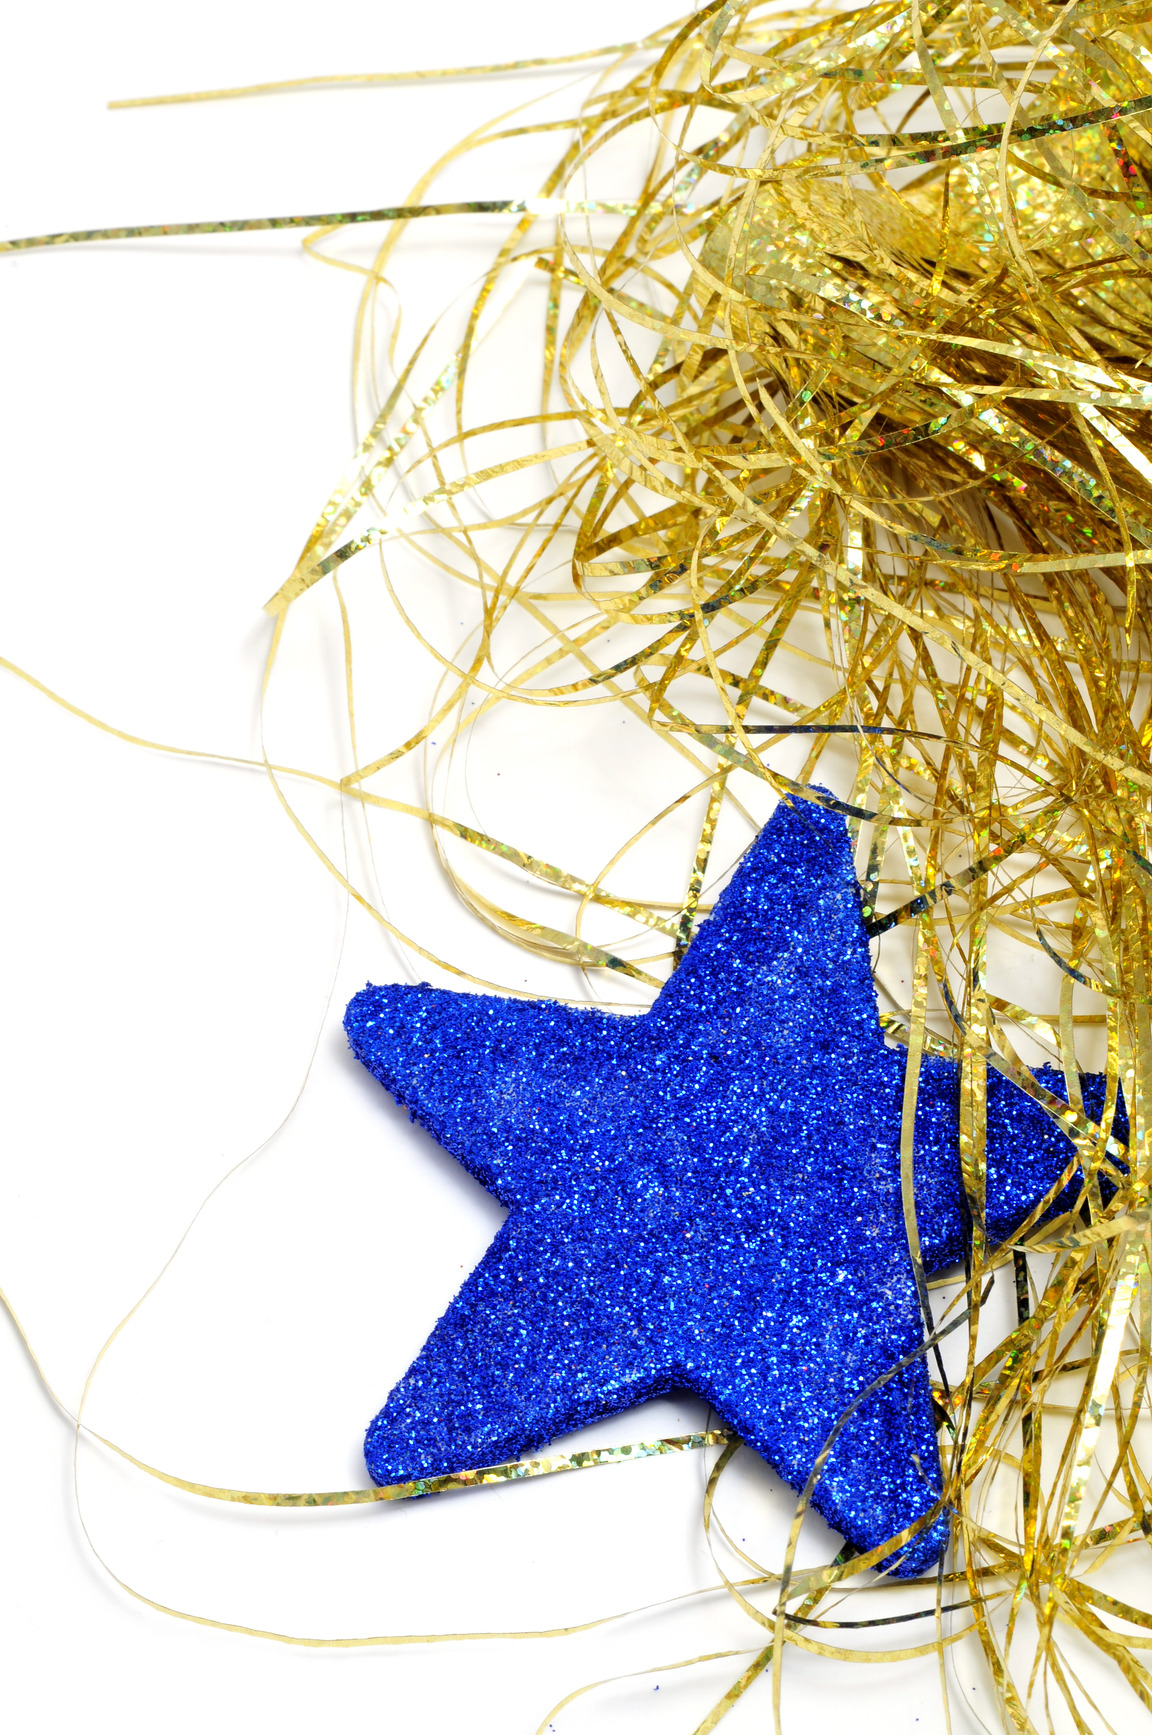 a blue christmas star and golden tinsel on a white background